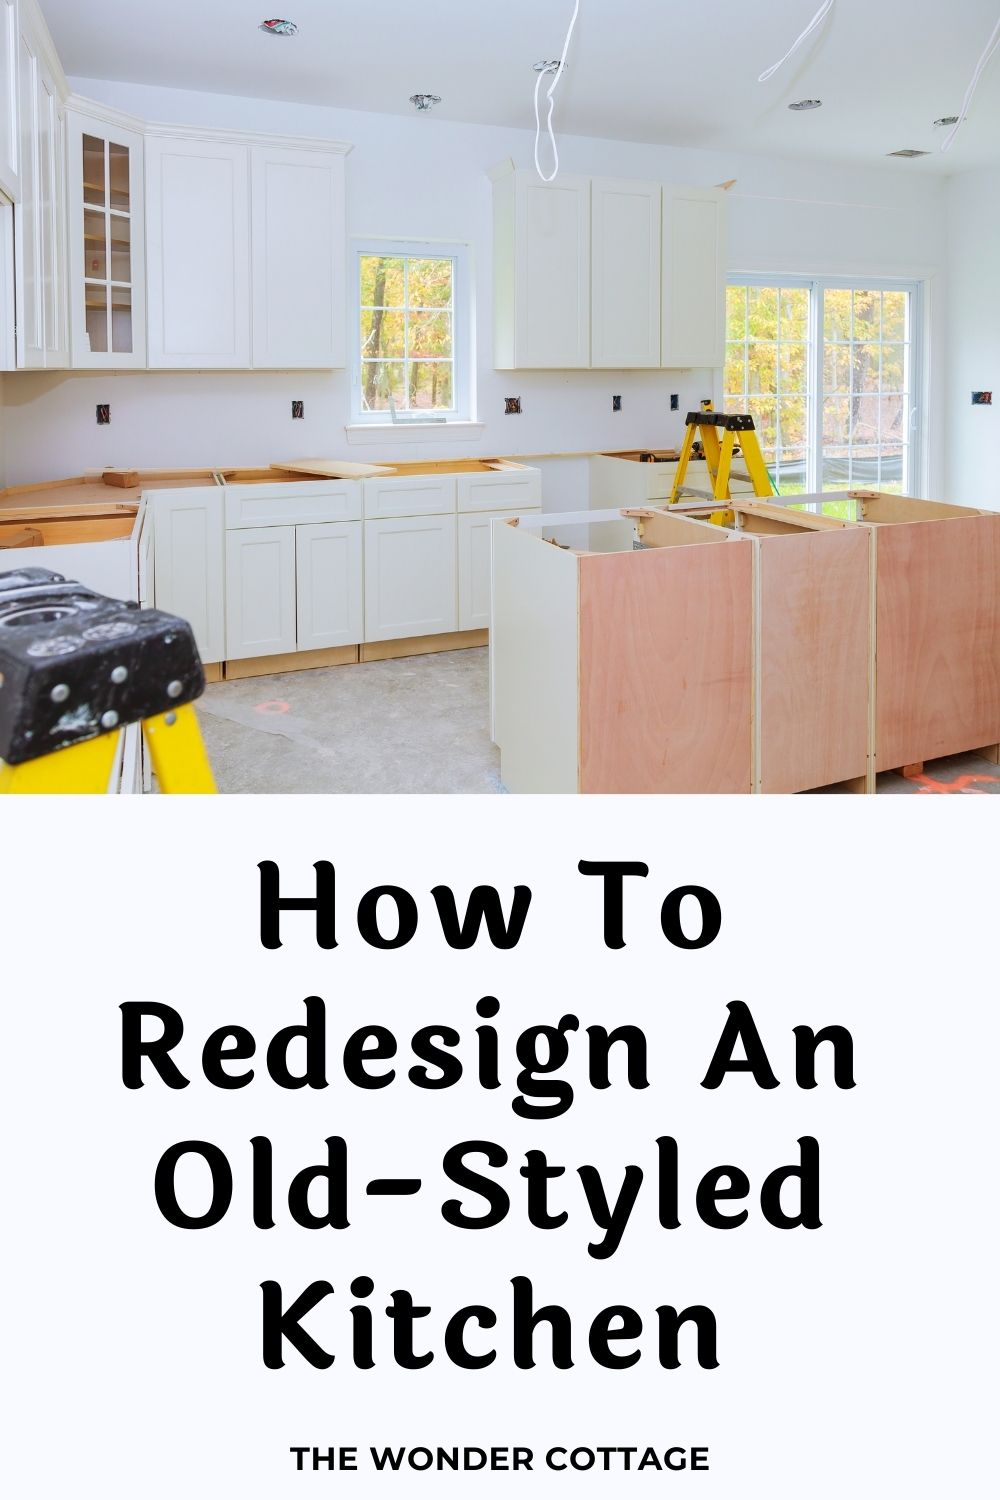 How To Redesign An Old-Styled Kitchen